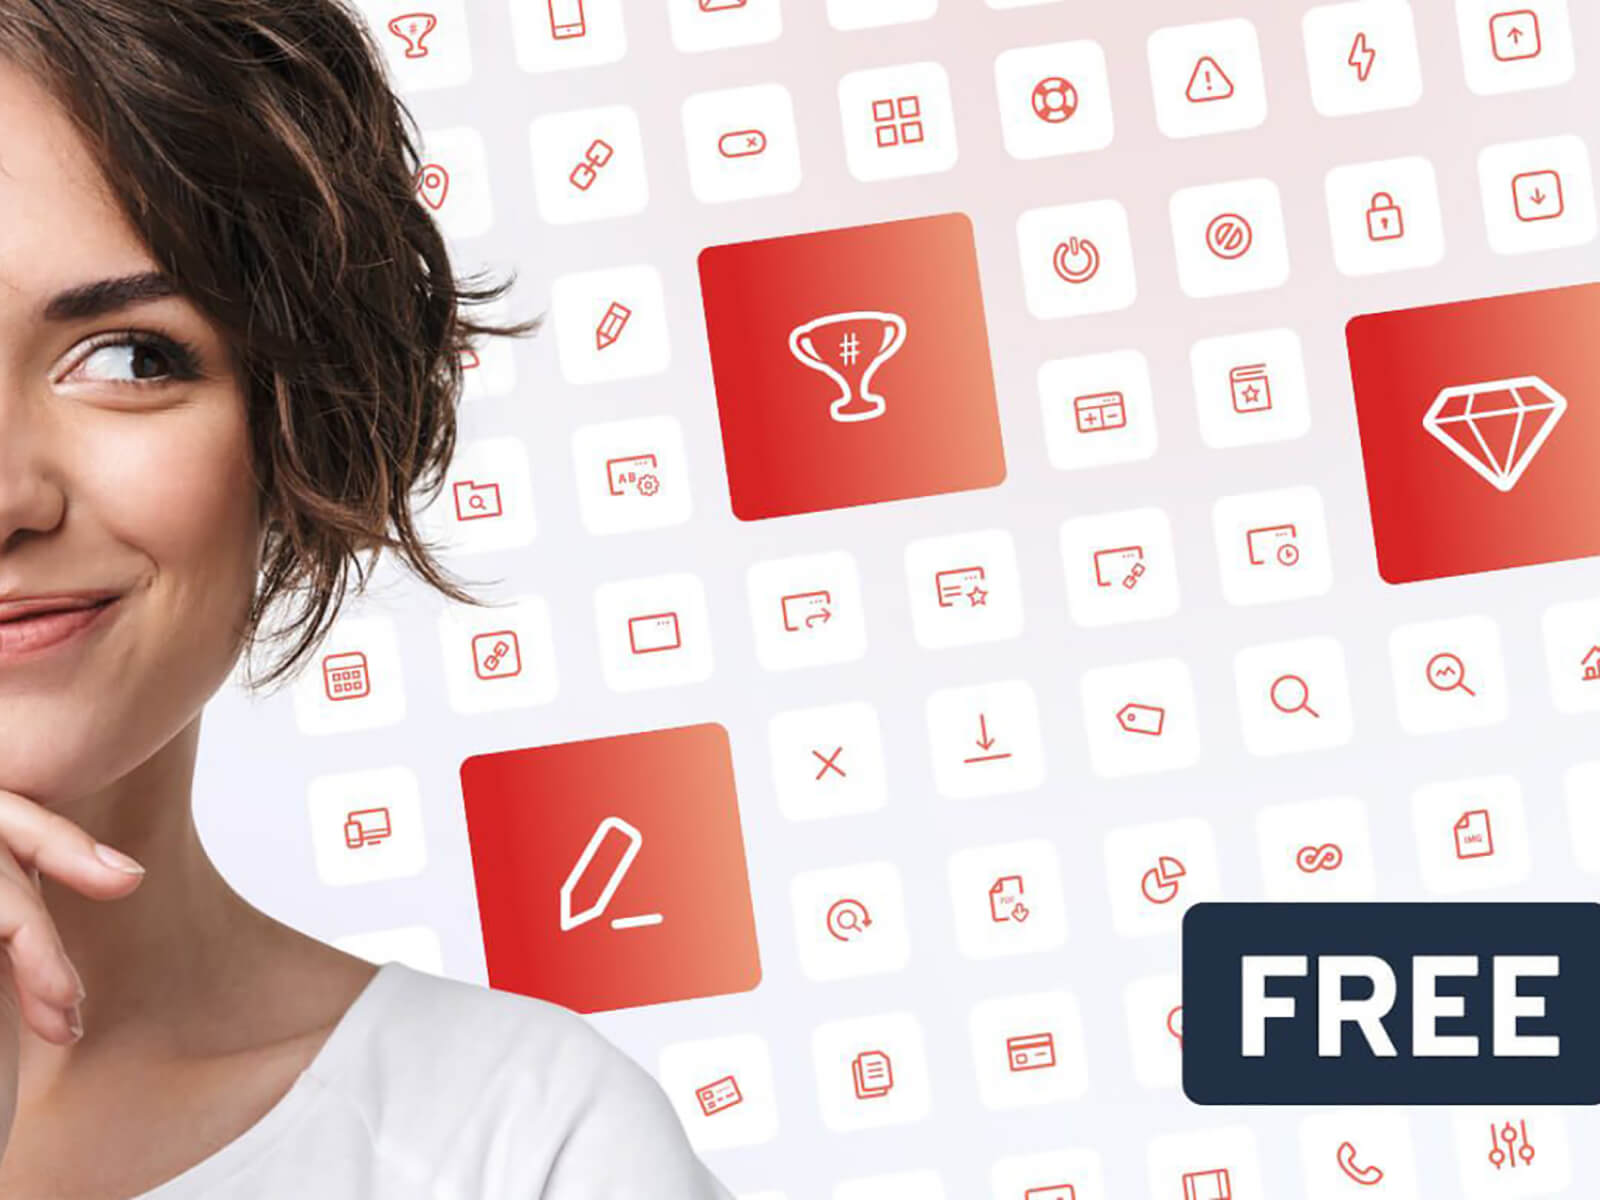 330 Free SVG icons cover image